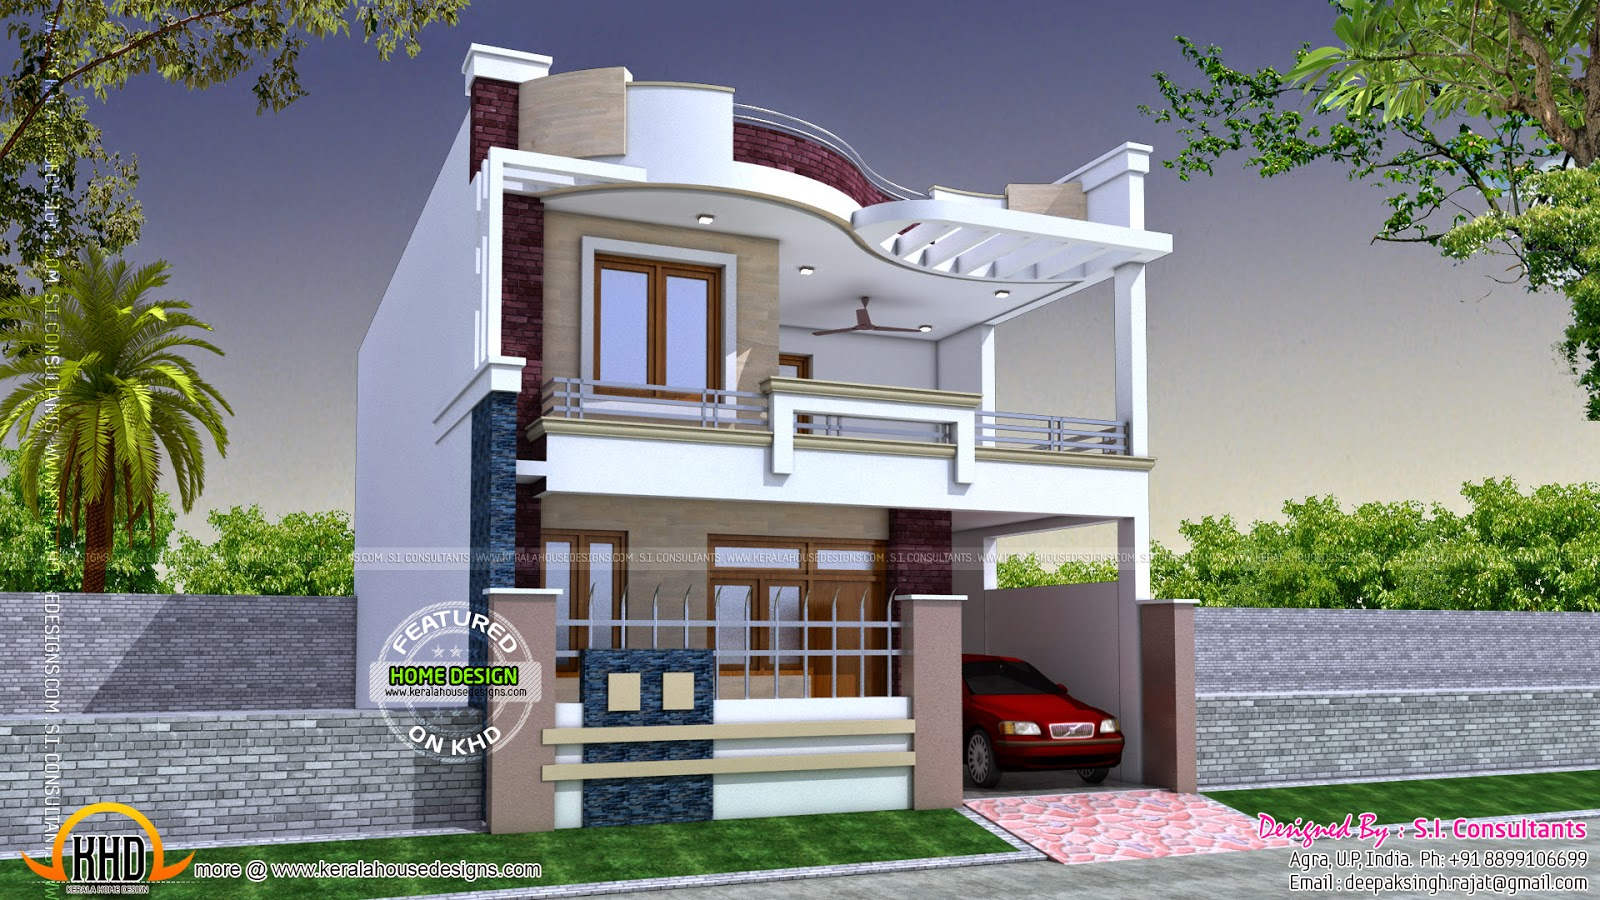 Modern indian home design kerala home design and floor plans for Model house photos in indian